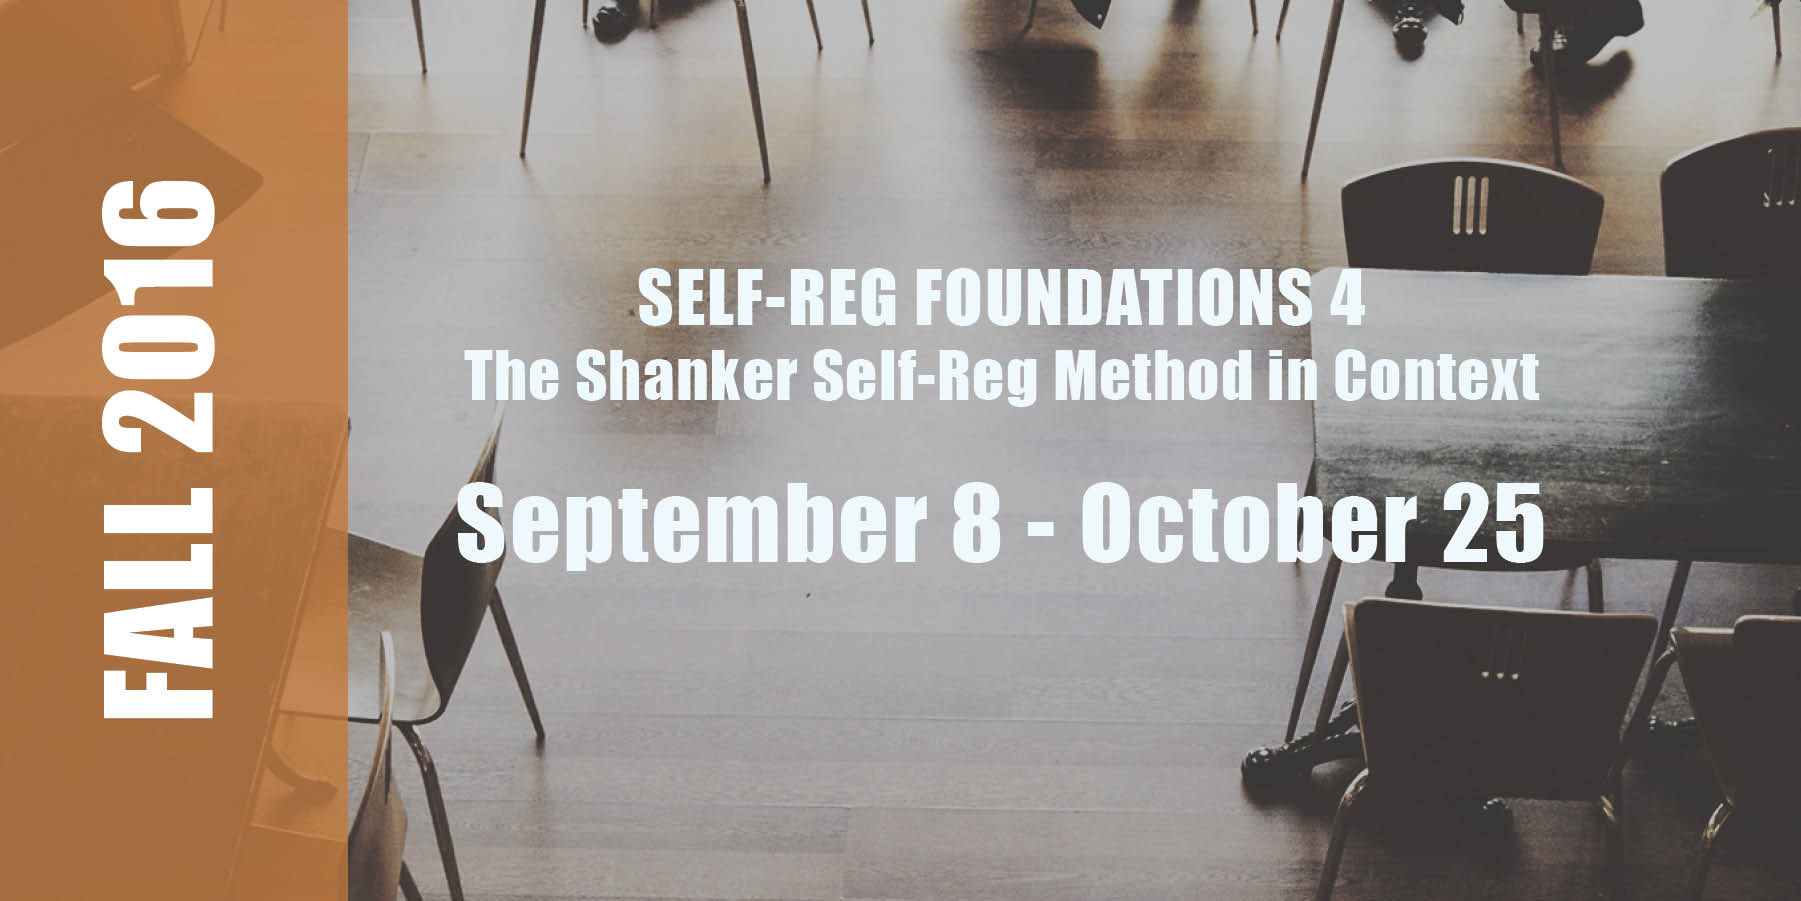 S-R Foundations 4 Date: September 8 - October 25